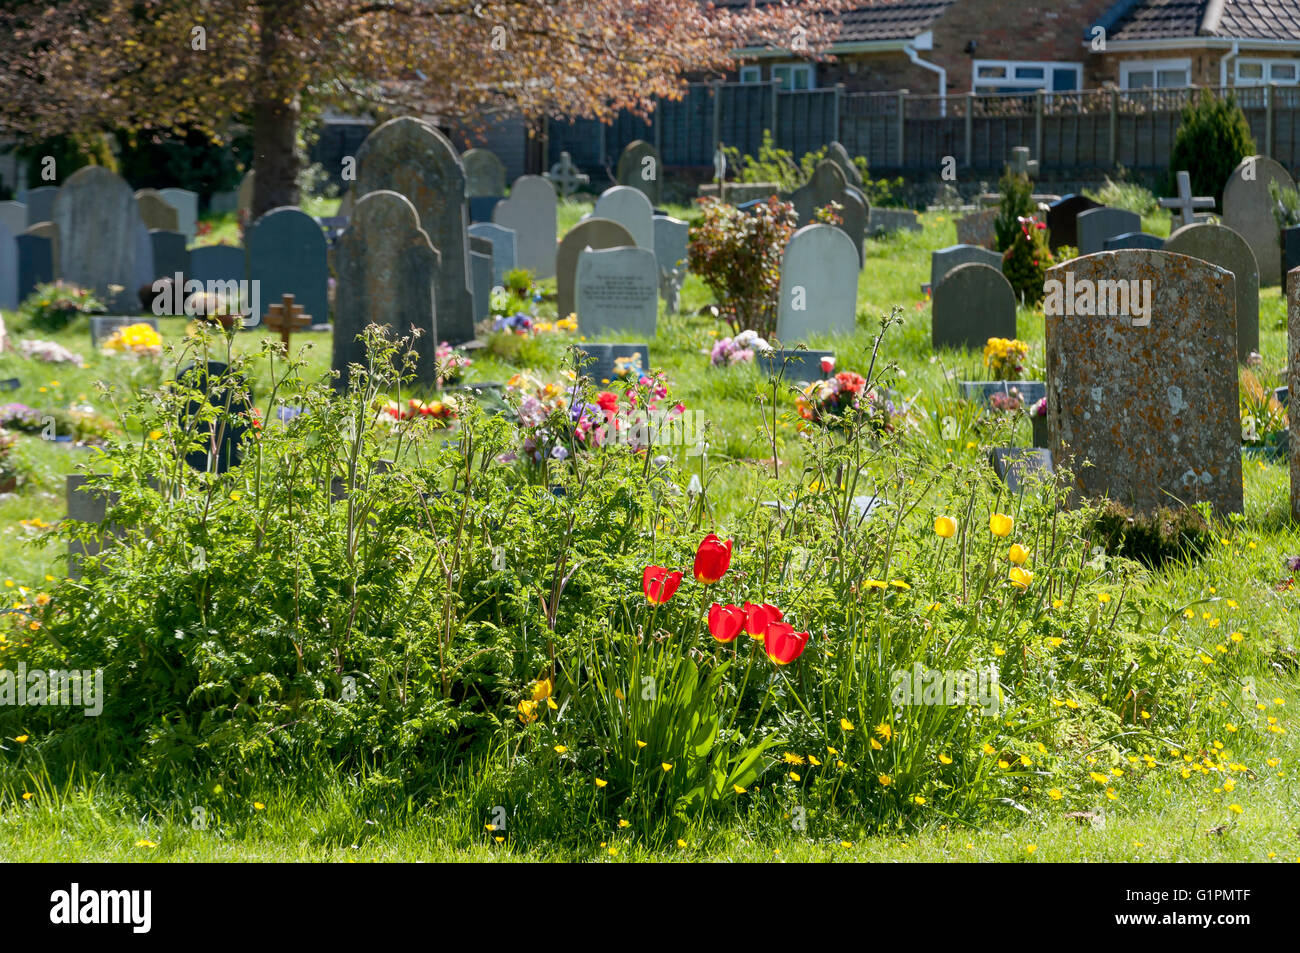 Graves at St Andrew's Church churchyard, Church Lane, Chinnor, Oxfordshire, England, United Kingdom - Stock Image